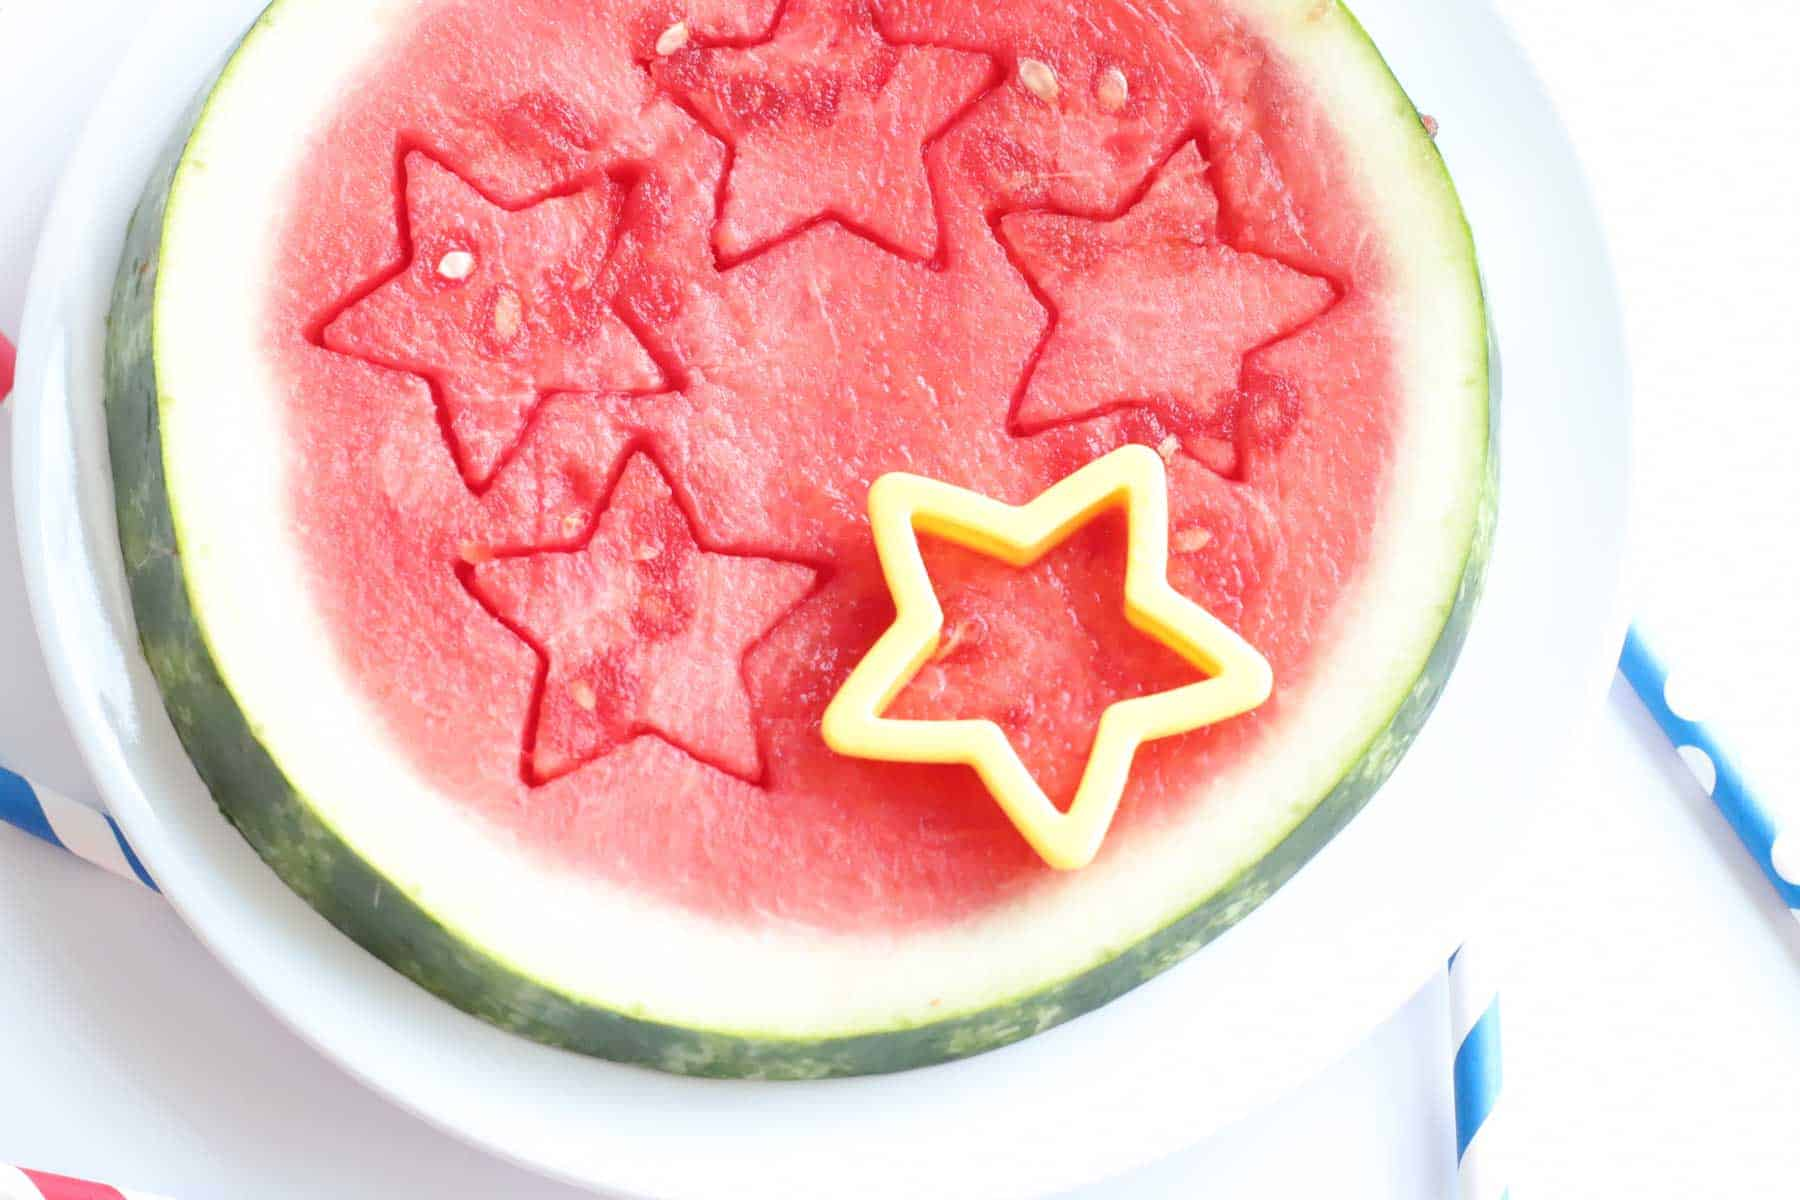 yellow star-shaped cookie cutter cutting stars out of a round slice of watermelon